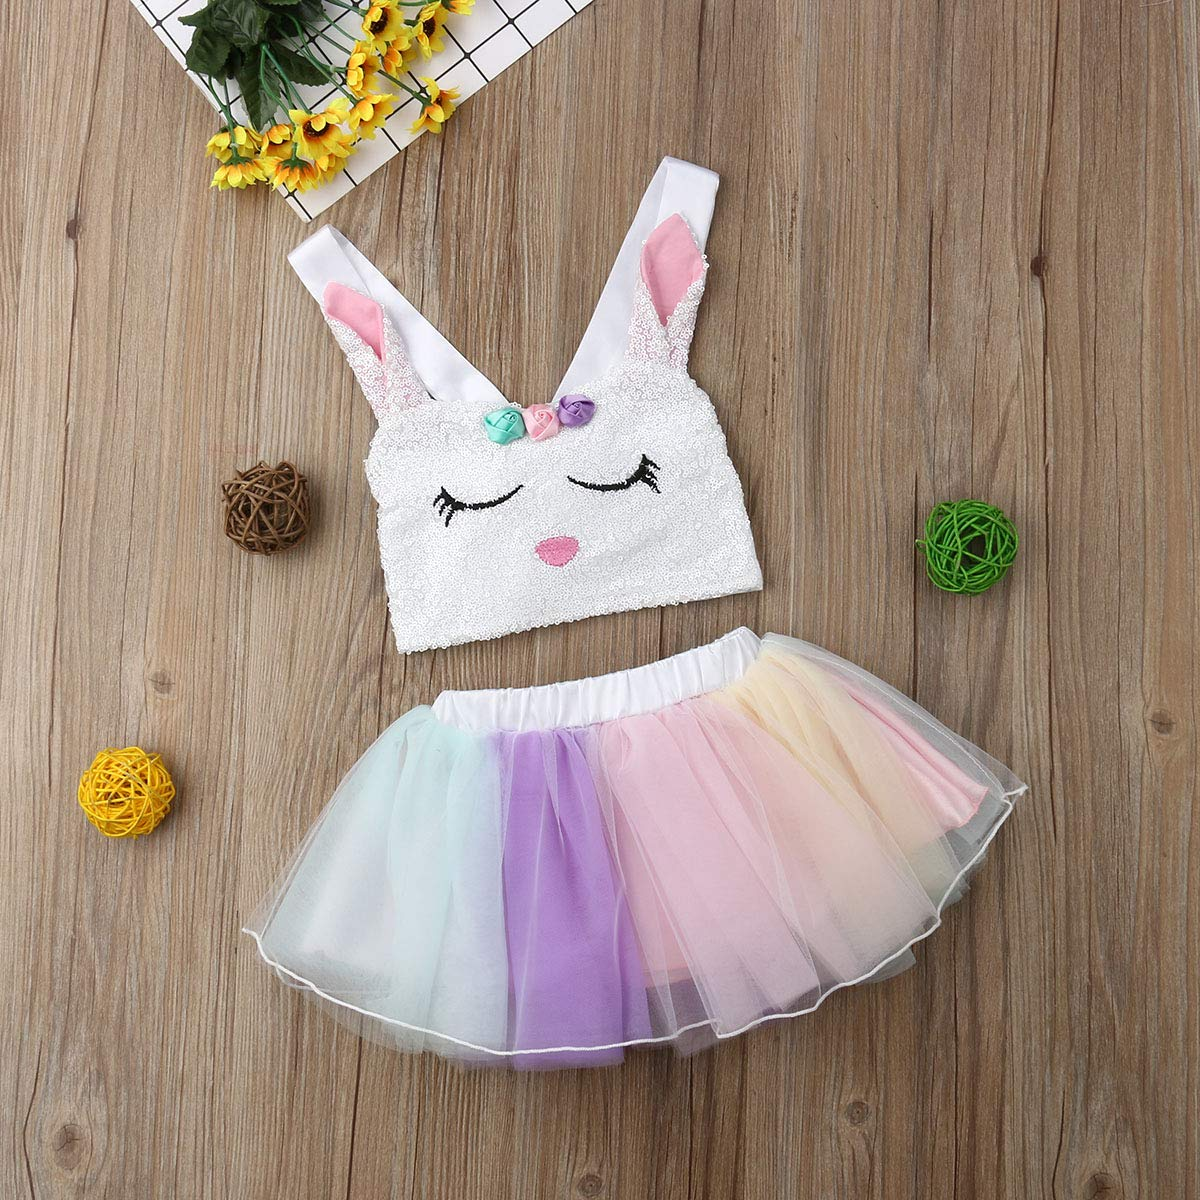 Toddler Kids Easter Outfit Baby Girls Sequin Bunny Crop Top Tutu Tulle Skirt Sets